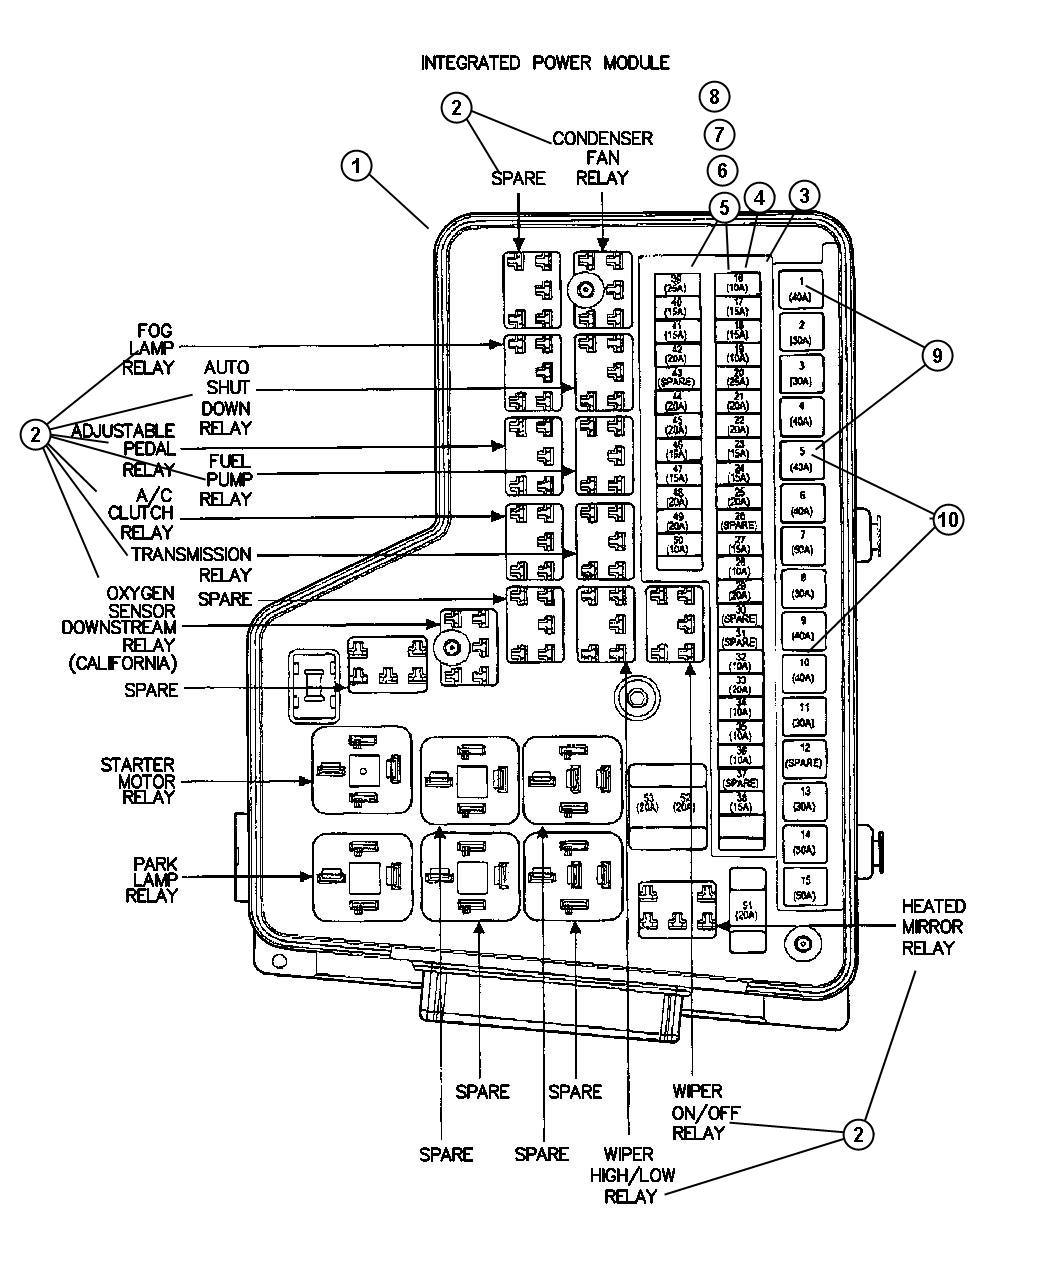 2013 Dodge Ram 1500 Interior Fuse Box Location: SOLVED: Location Of Camshaft Positioning Sensor